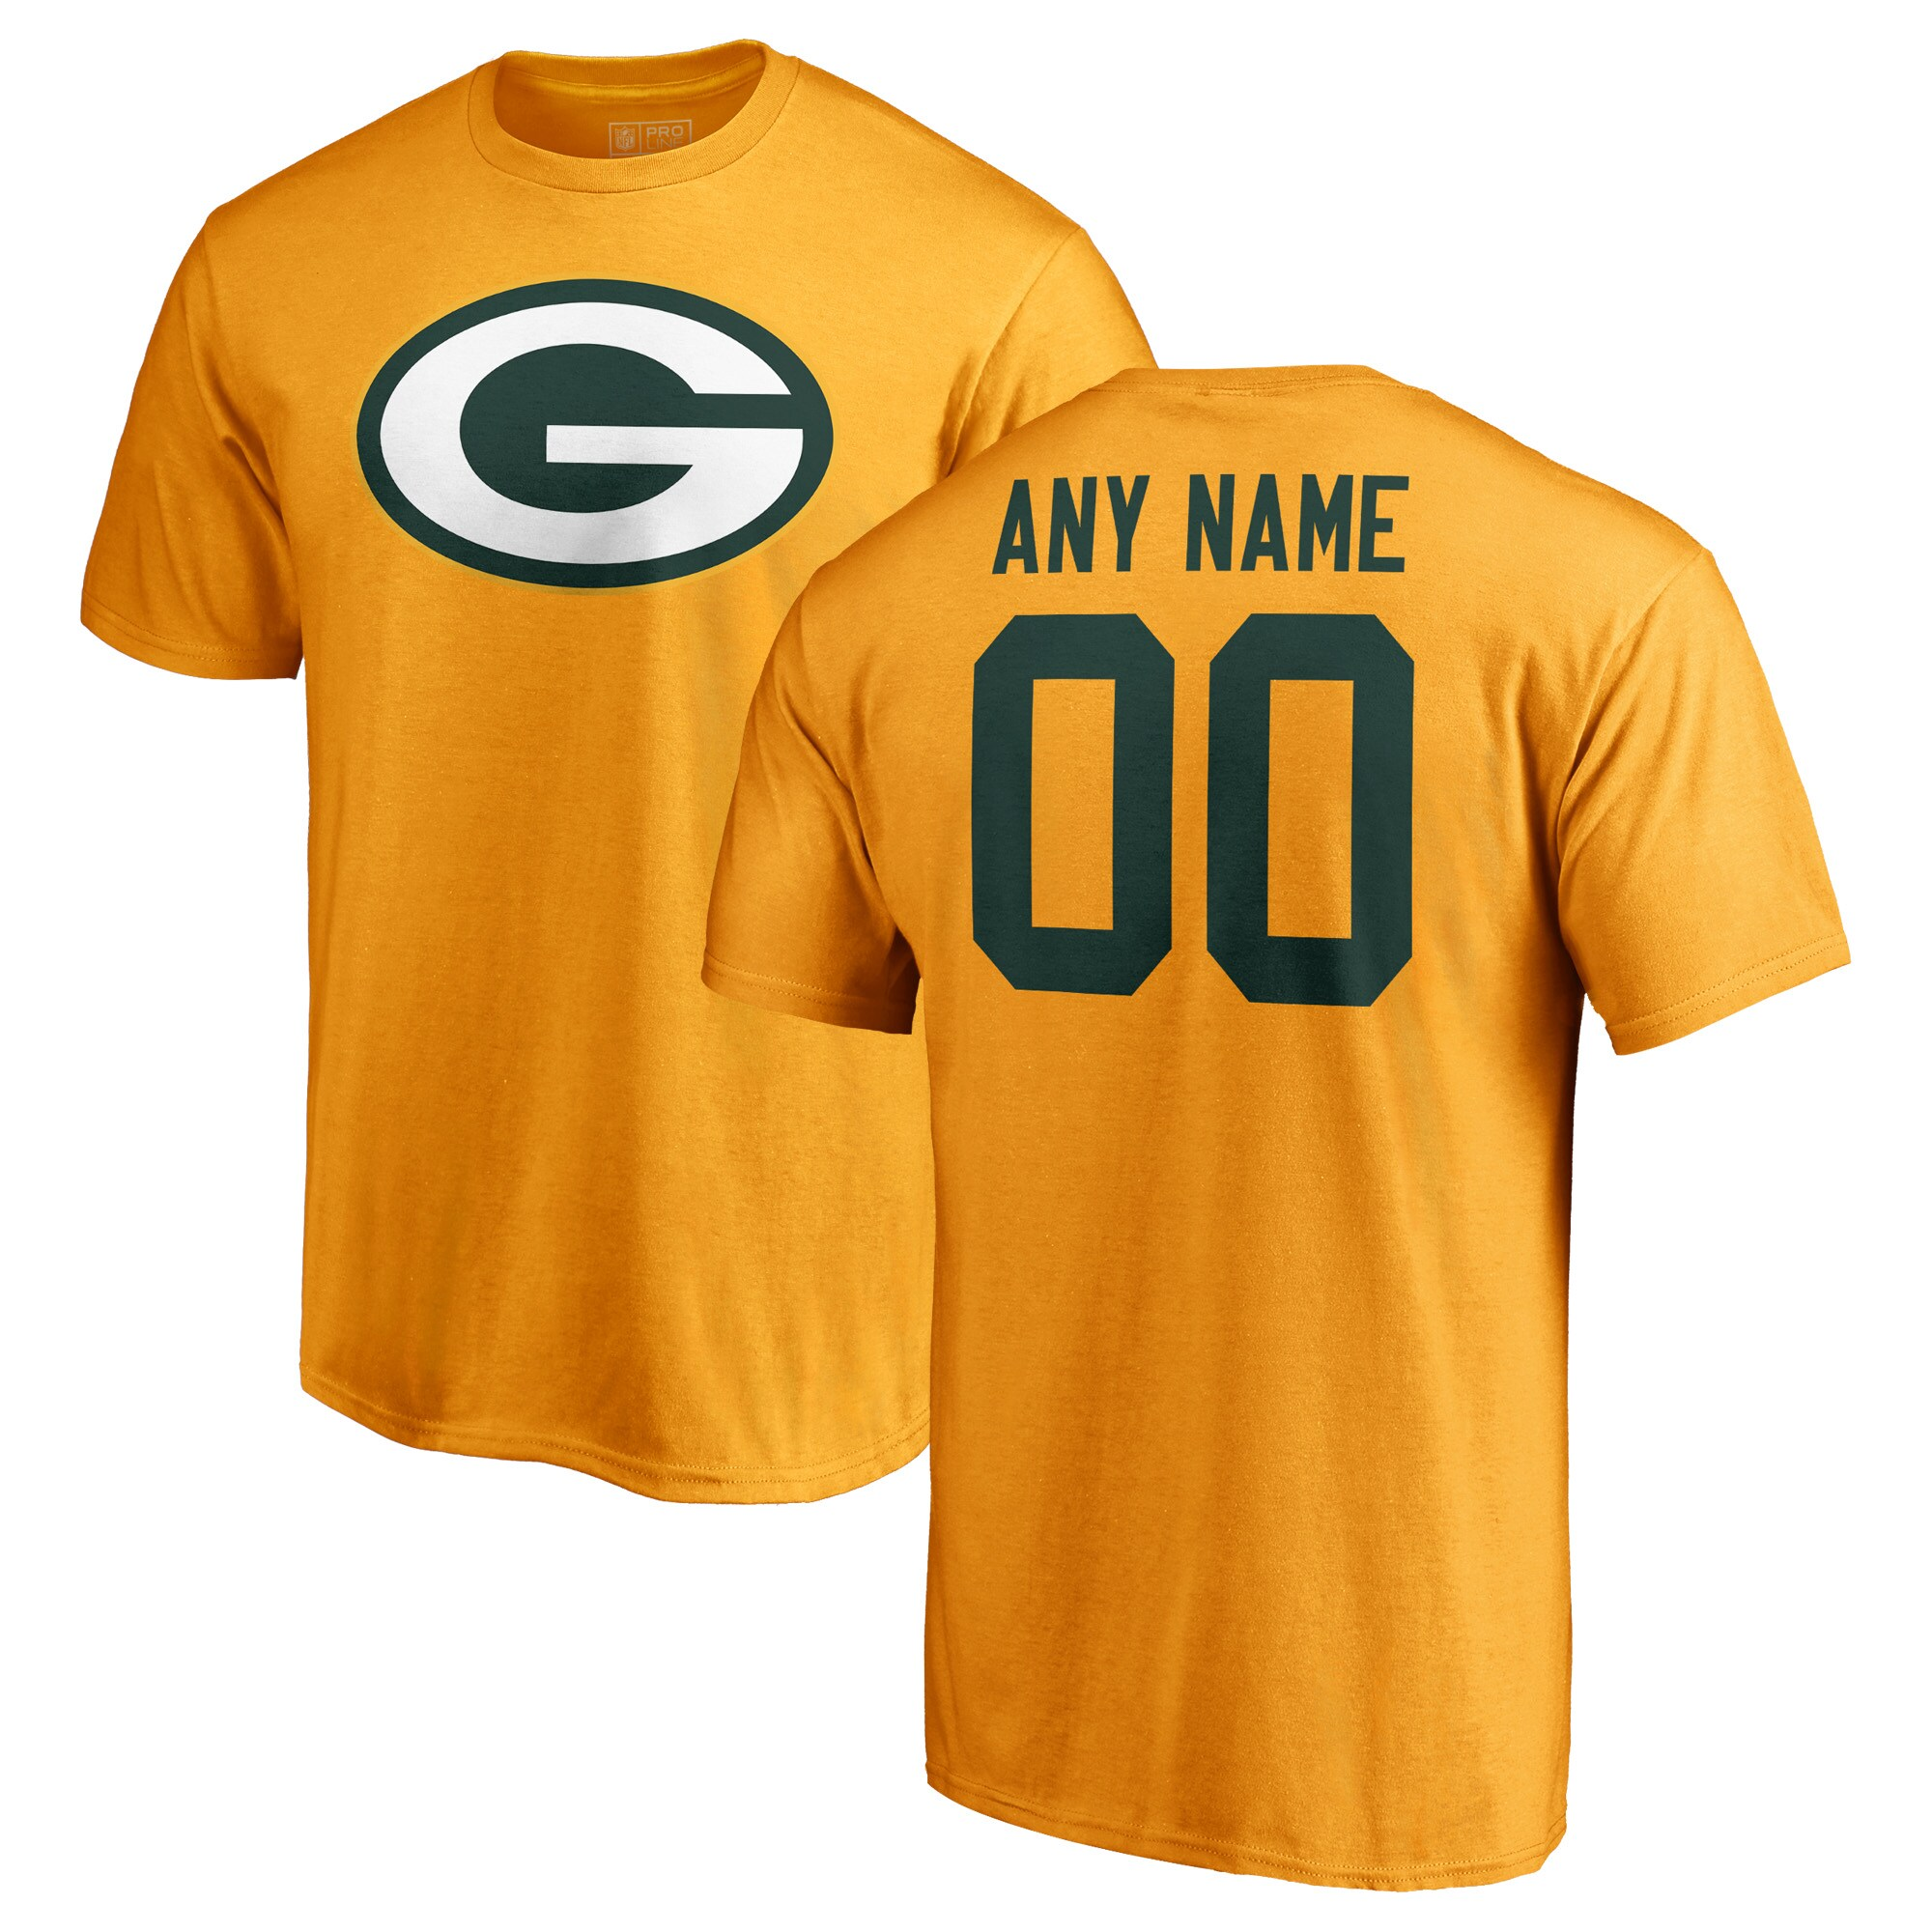 Green Bay Packers NFL Pro Line Personalized Name & Number Logo T-Shirt - Gold